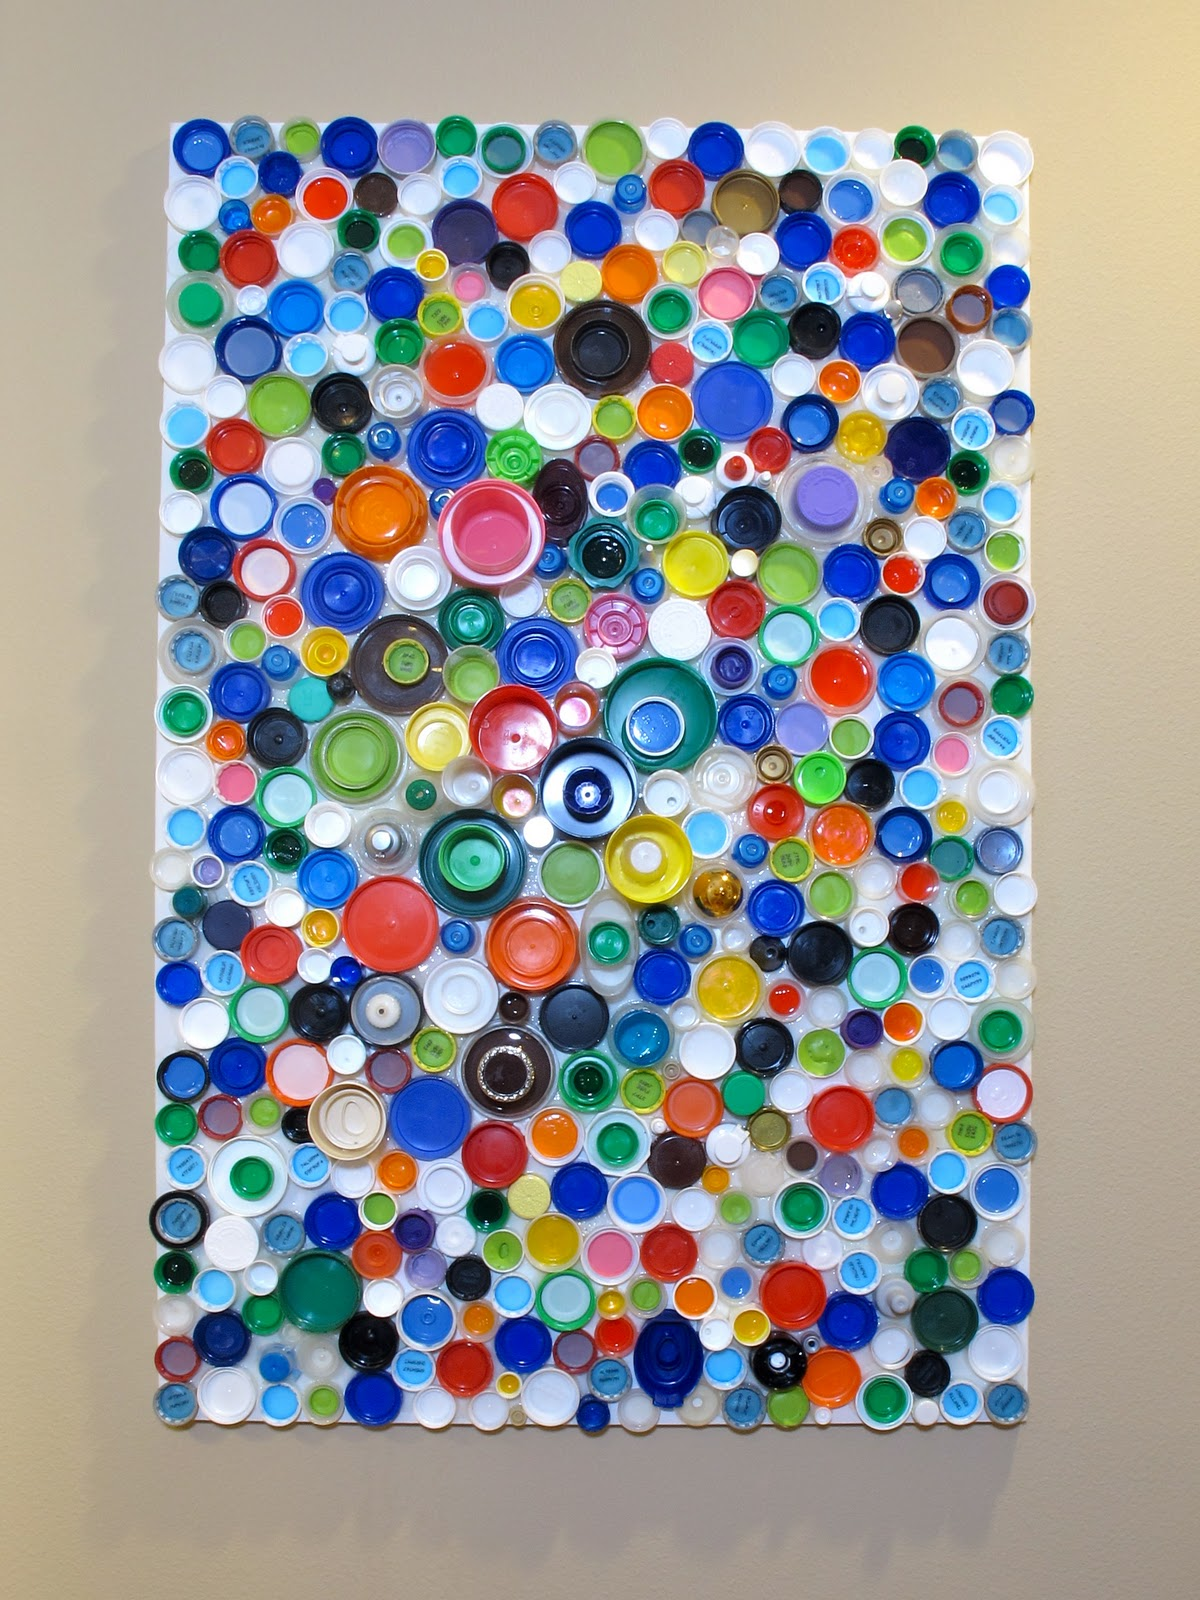 blukatkraft how to make an upcycled plastic bottle cap mosaic